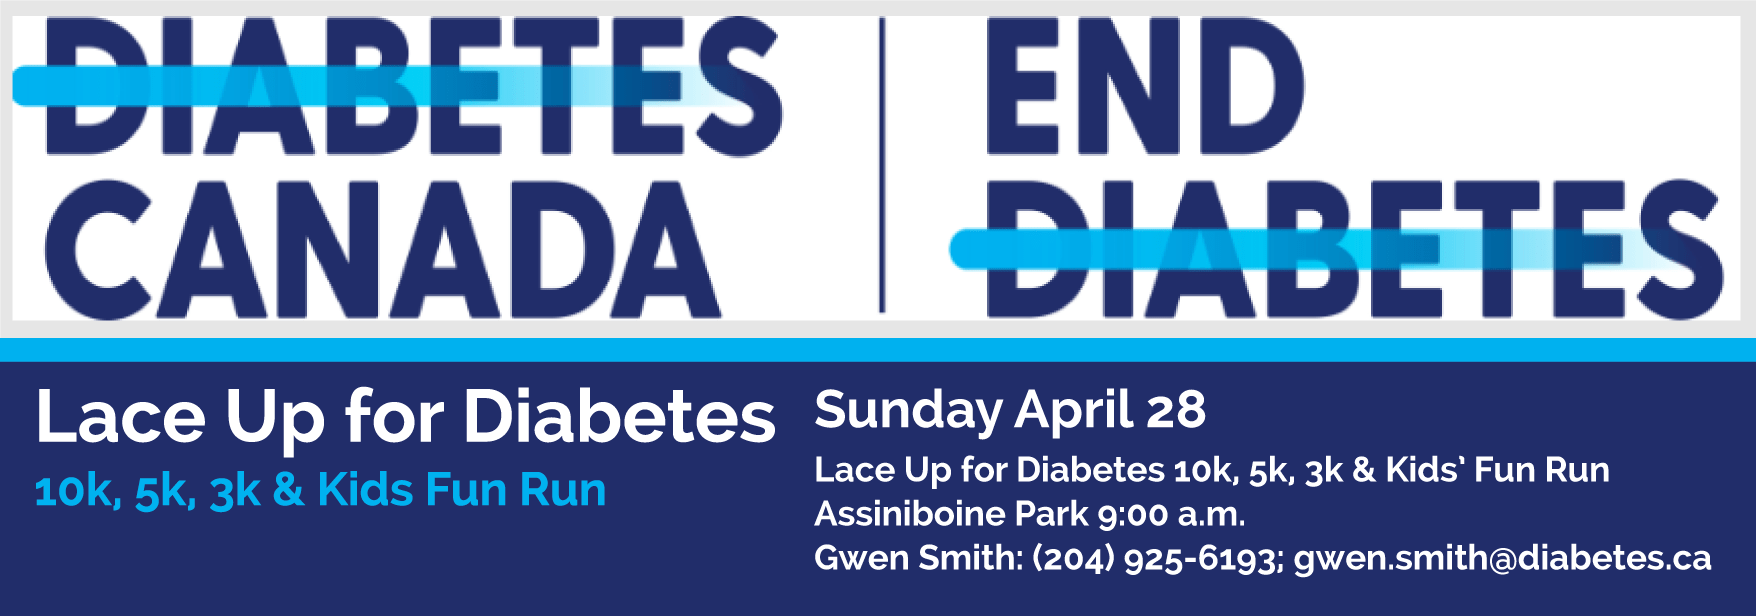 https://mraweb.ca/events/lace-up-for-diabetes/